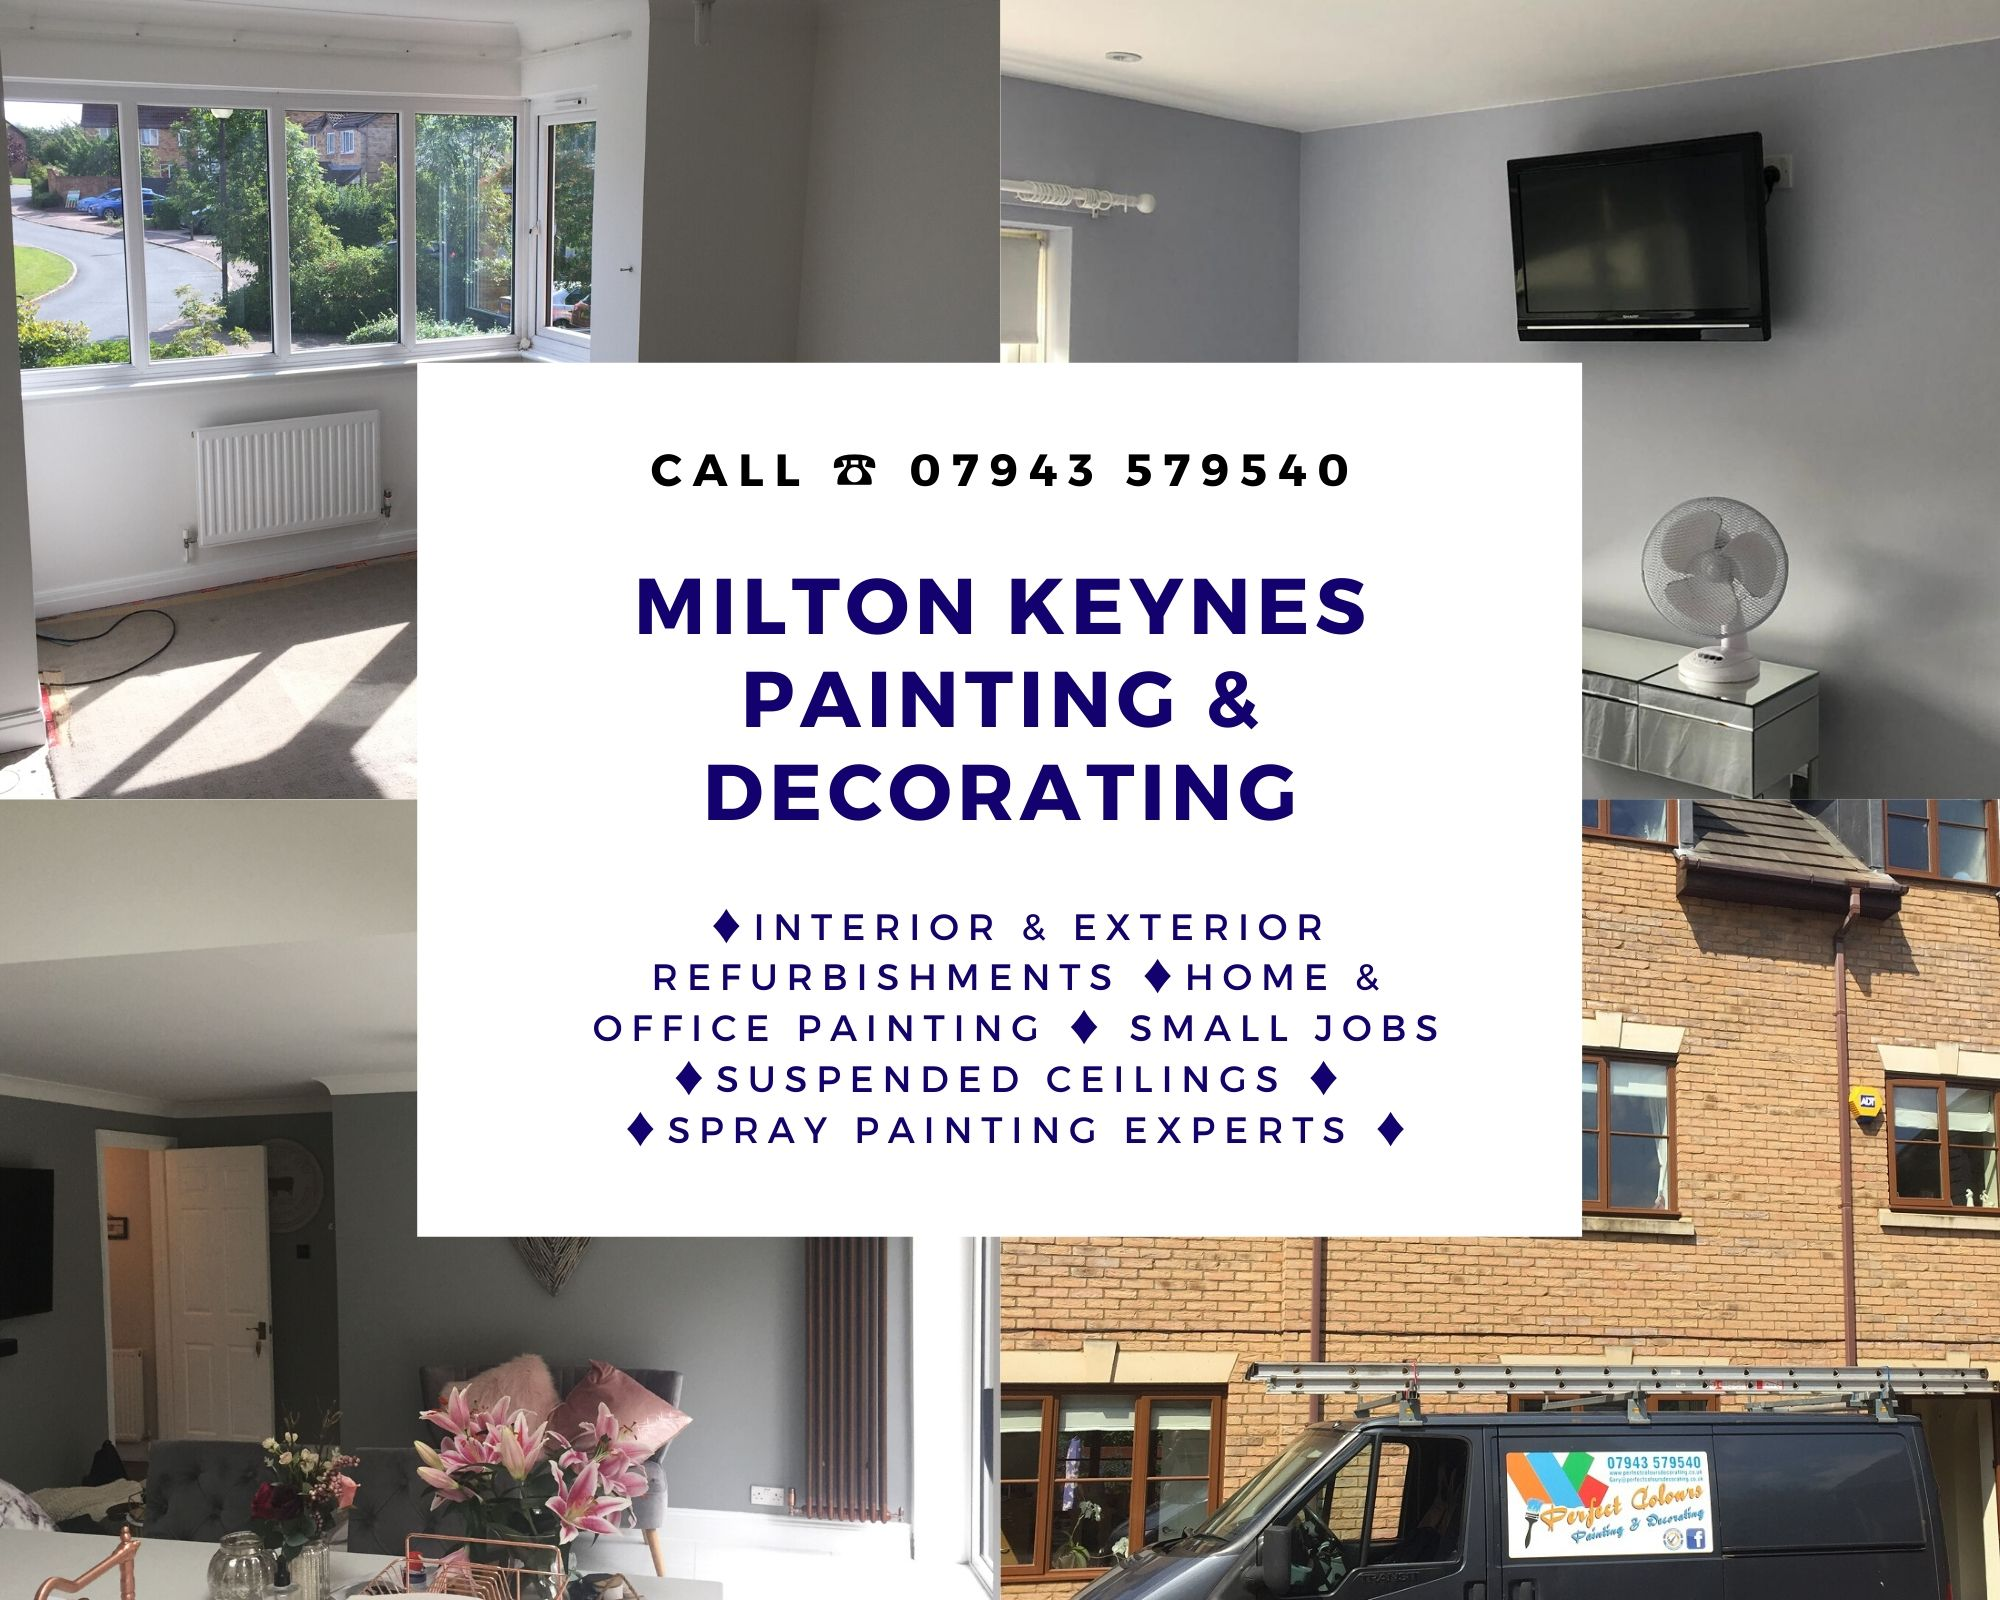 Milton Keynes Painter and Decorator COVID Update May 2020